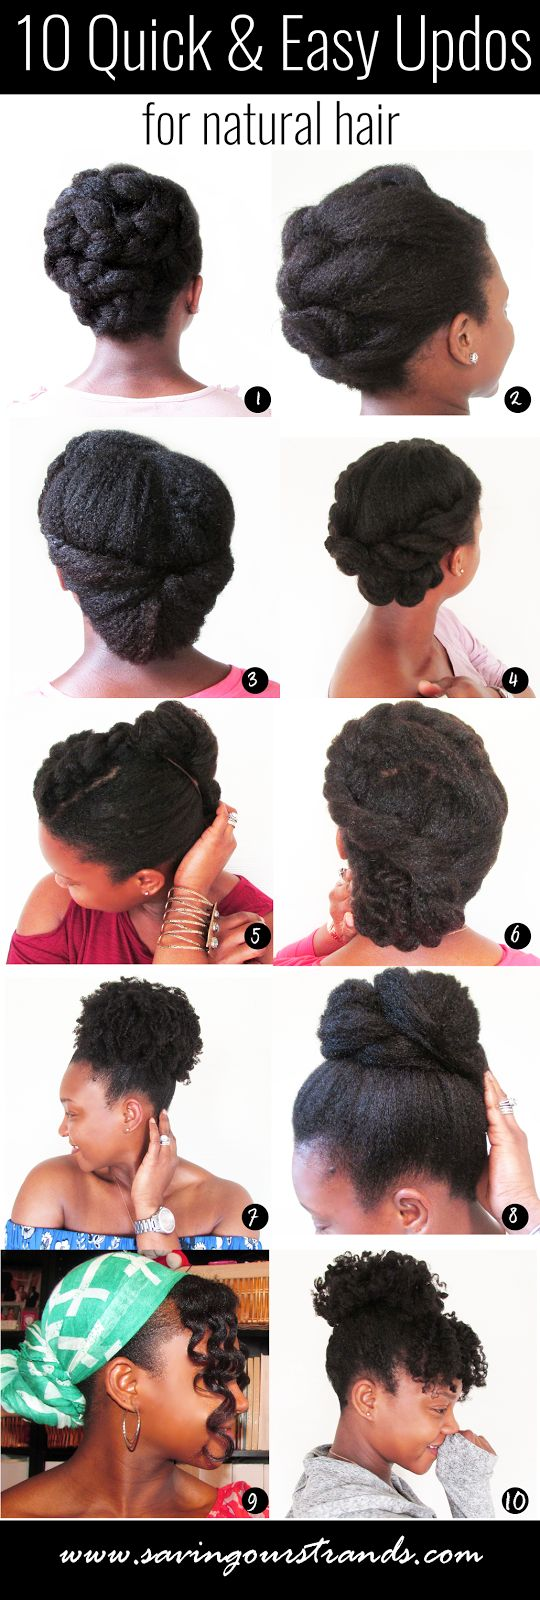 Best 25 quick easy updo ideas on pinterest easy hair styles savingourstrands celebrating our natural kinks curls coils 10 quick and easy updos for natural hair pmusecretfo Images